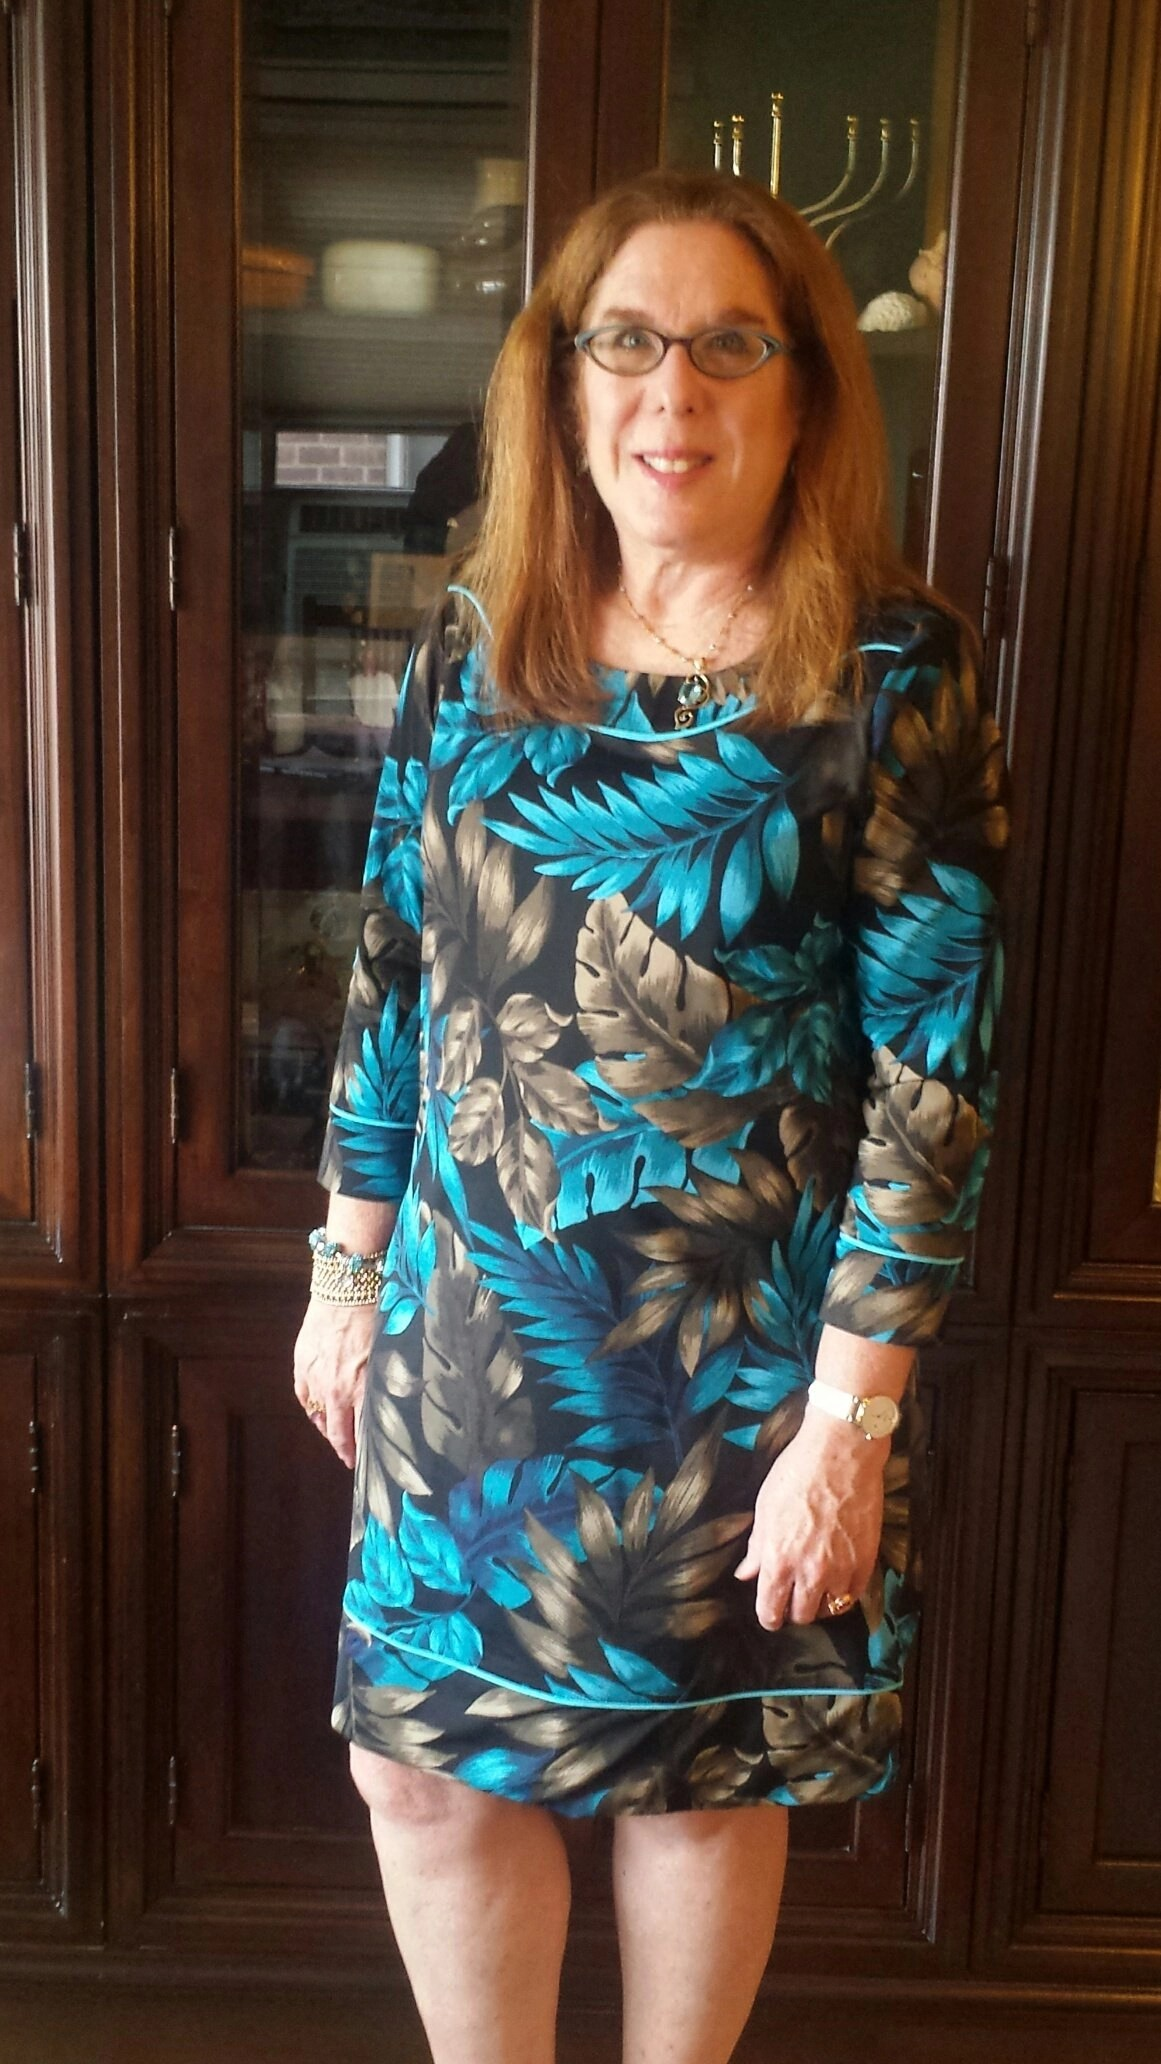 "a127891d8f I m wearing the fabulous Lands End Women s Swim Cover-up Tunic Dress in  Tropical"" I liked this so much I bought another one in another pattern for  travel!"